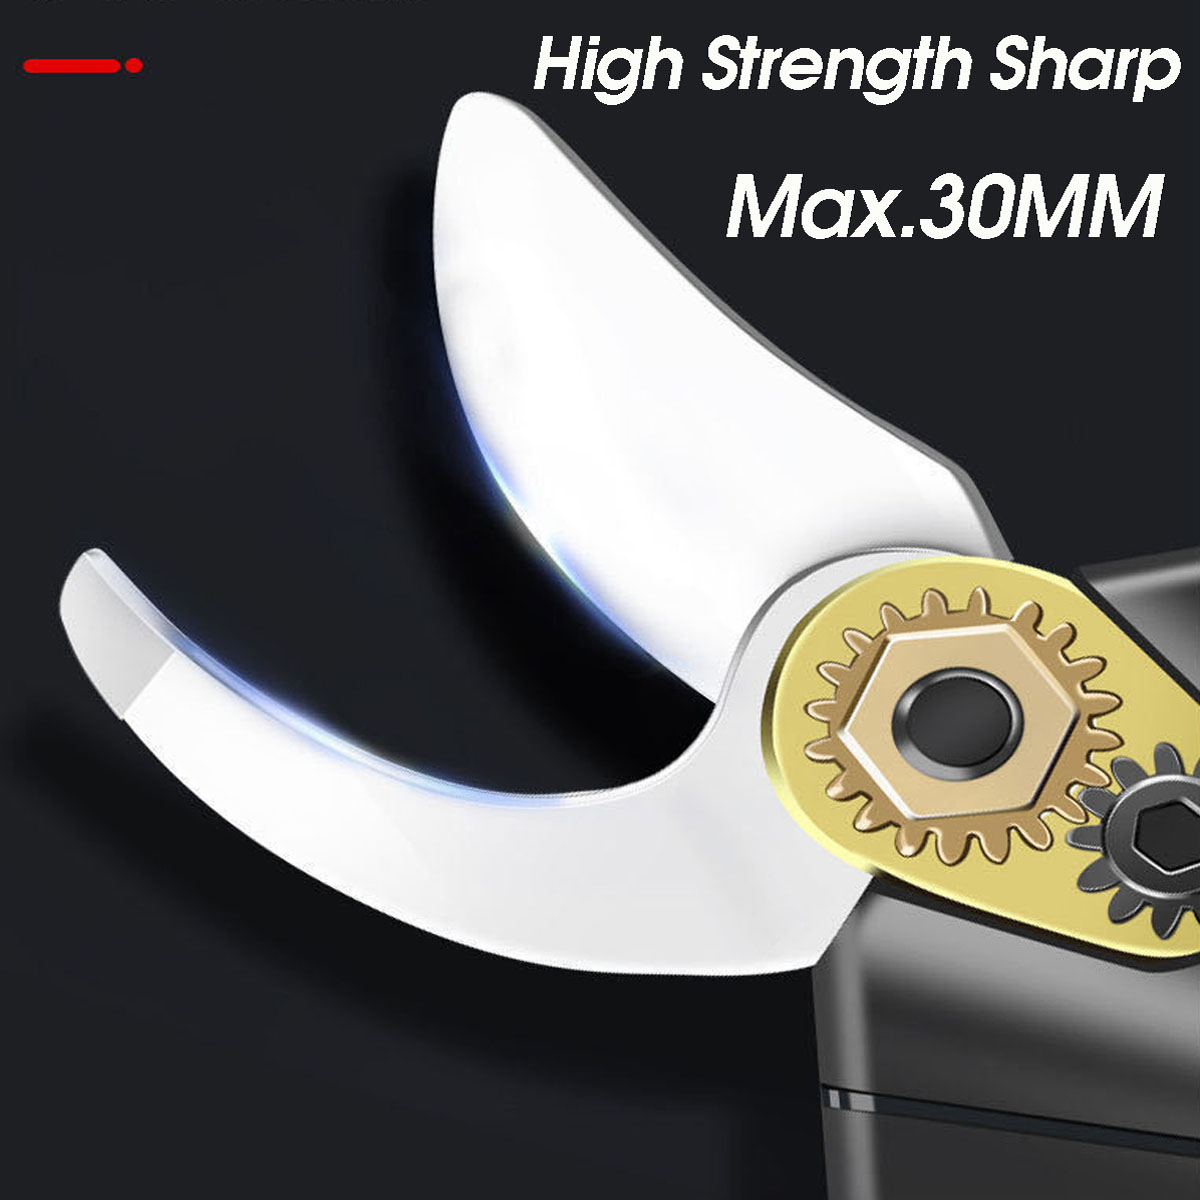 Tools : 88V 800W Cordless Pruner Lithium-ion Pruning Shear Efficient Fruit Tree Bonsai Pruning Electric Tree Branches Cutter Landscaping